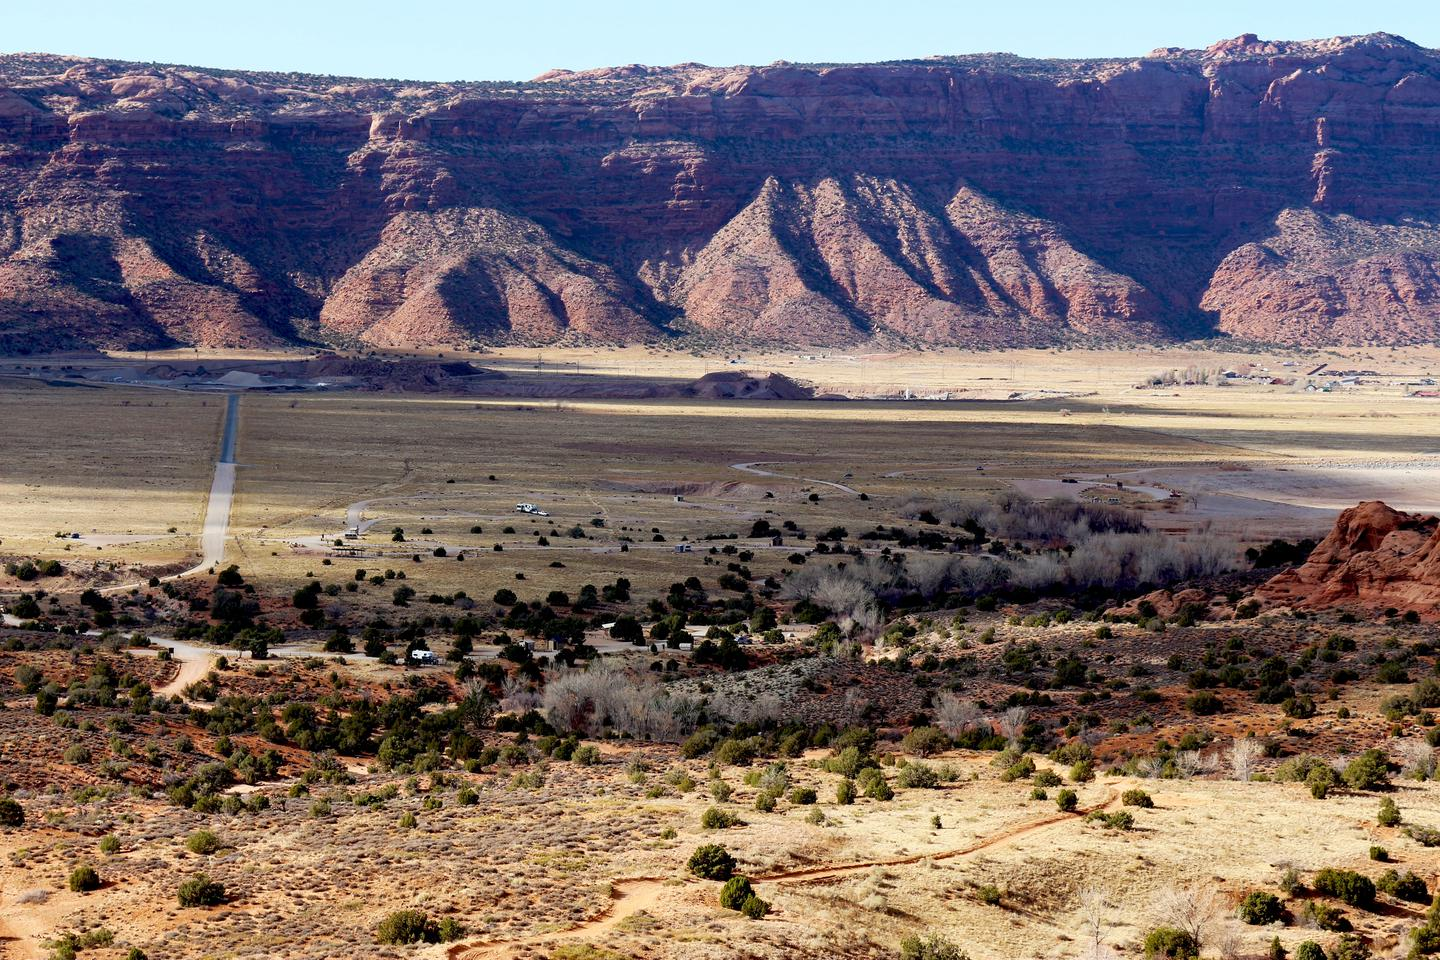 Overview of Ken's Lake Campground with red rock cliffs lining the horizon.